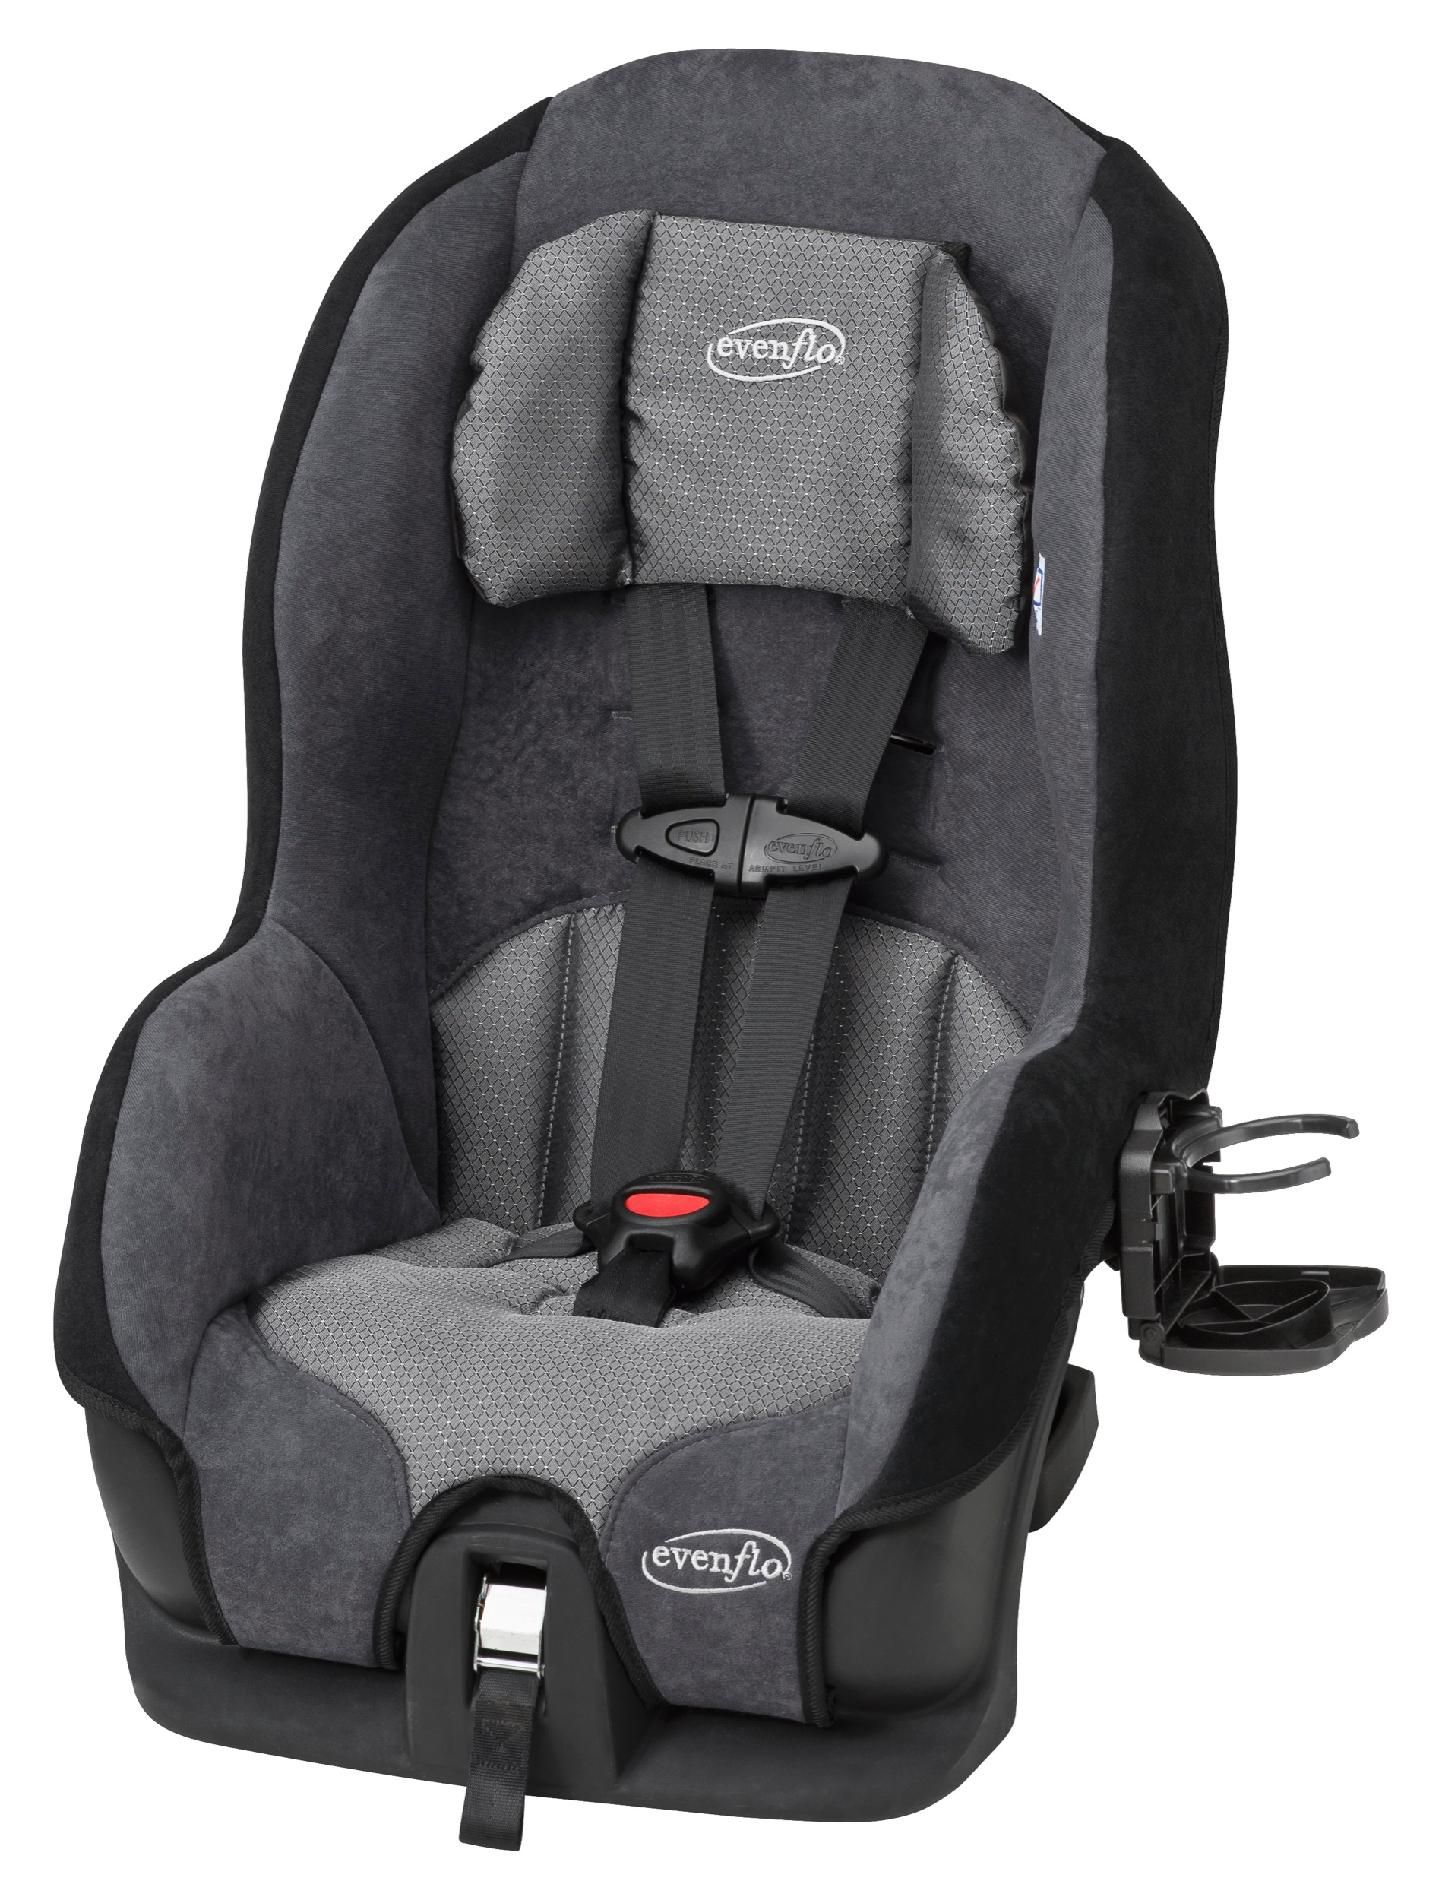 Evenflo Car Seat Canopy Replacement & Evenflo-nuture-baby-car-seat-cover-cushion-black